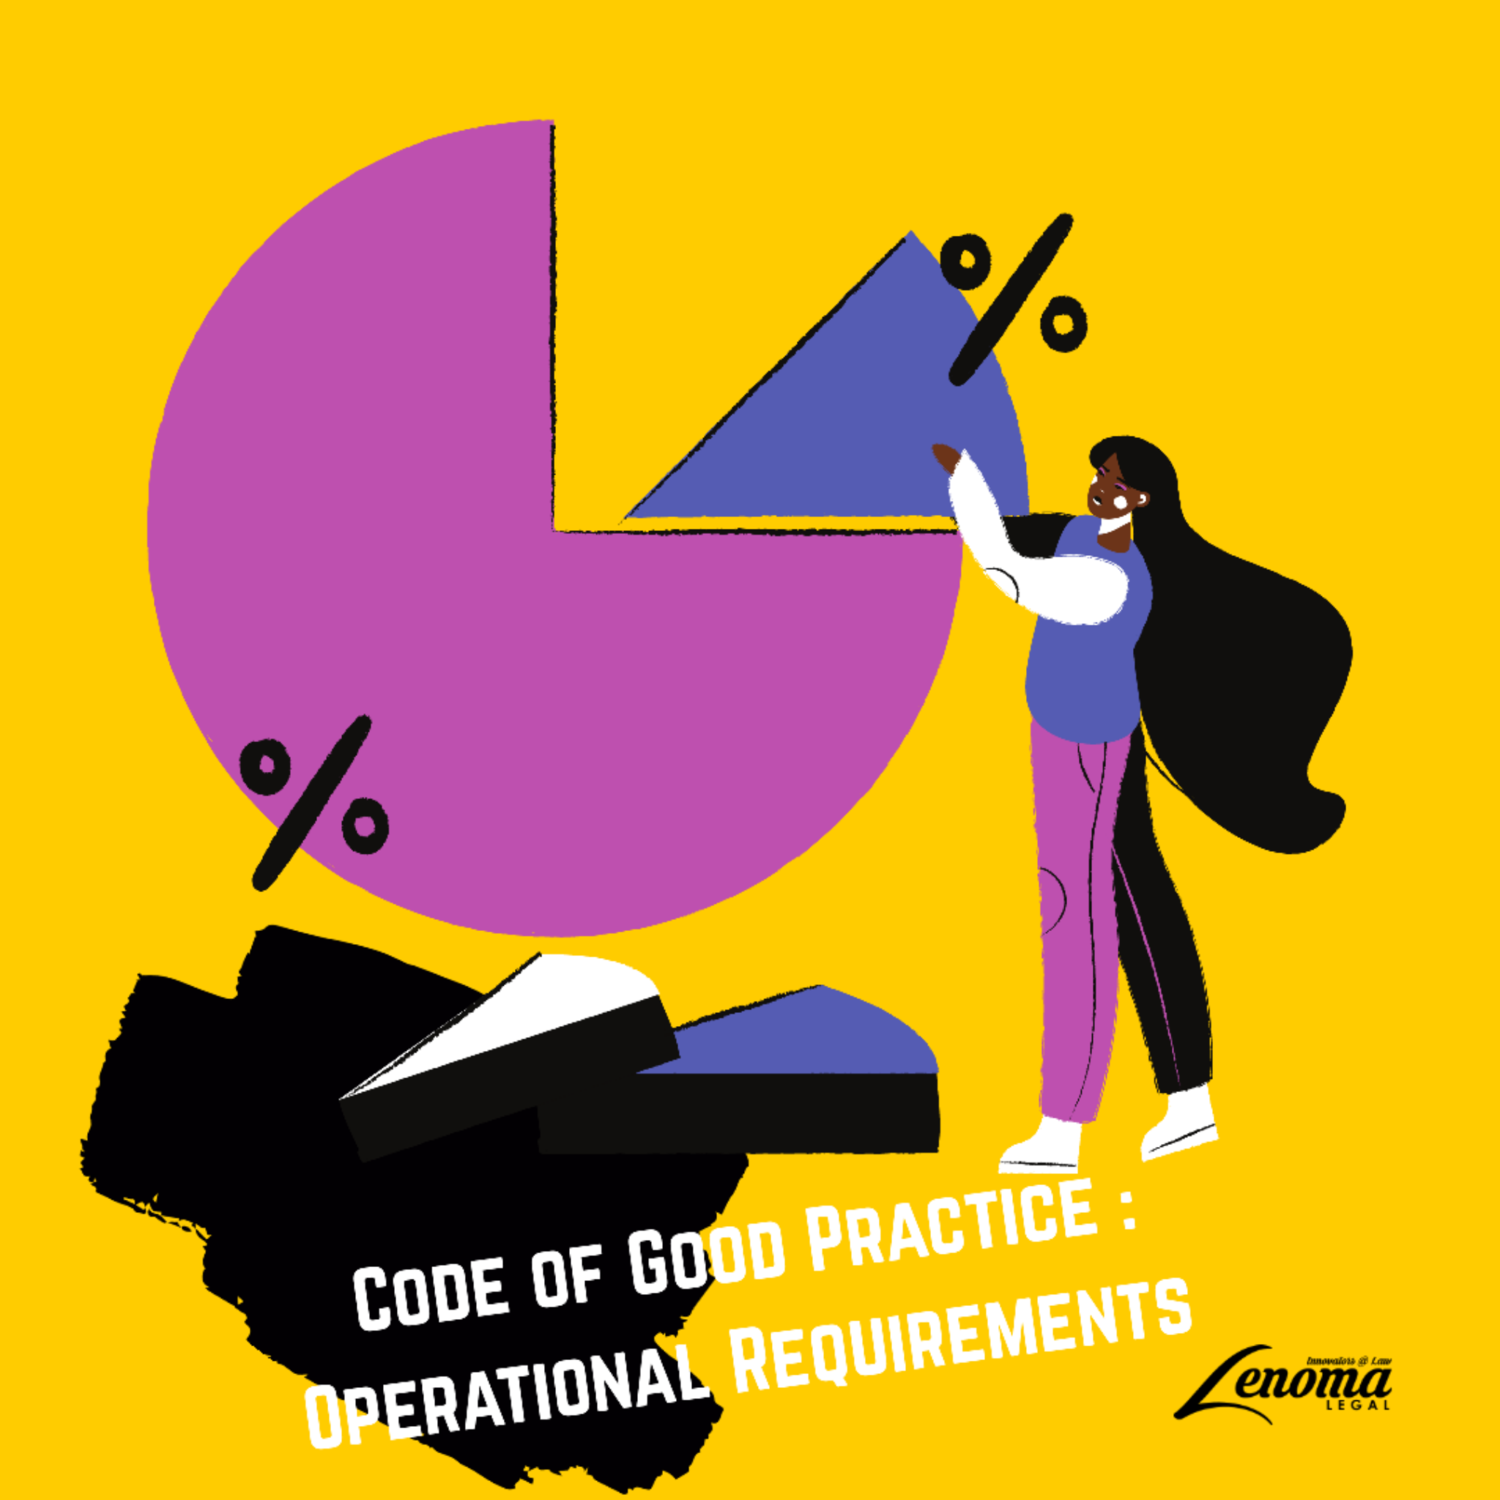 Code of Good Practice : Operational Requirements